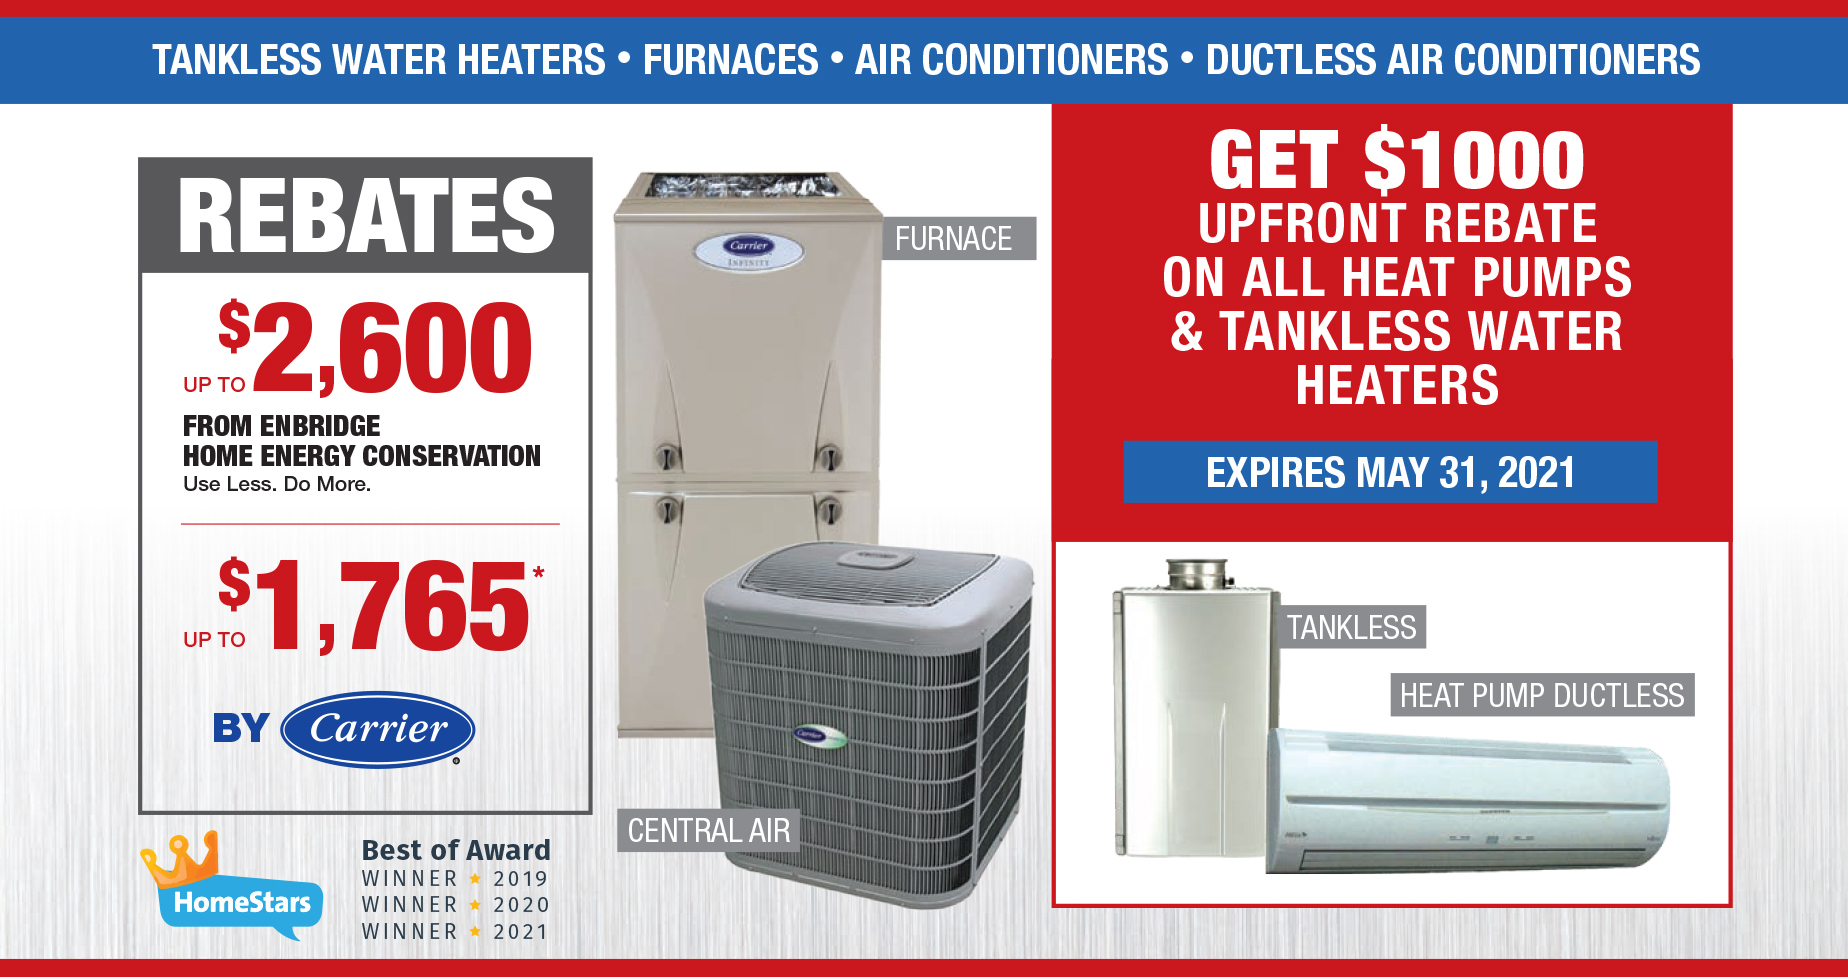 Rabate on all heat pumps and tankless water heaters-1